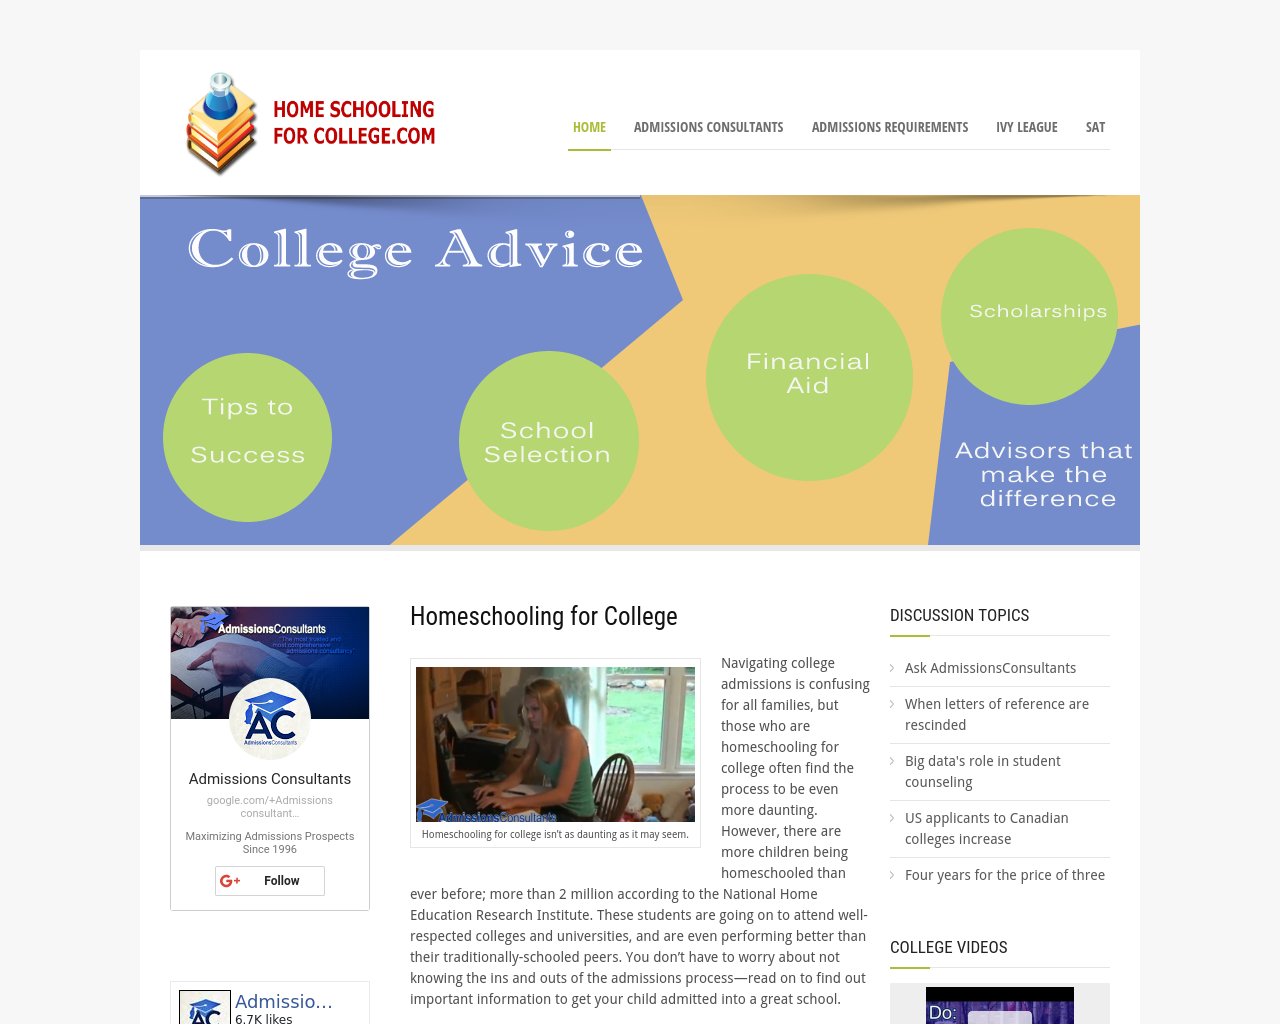 Home-Schooling-for-College.com-Advertising-Reviews-Pricing